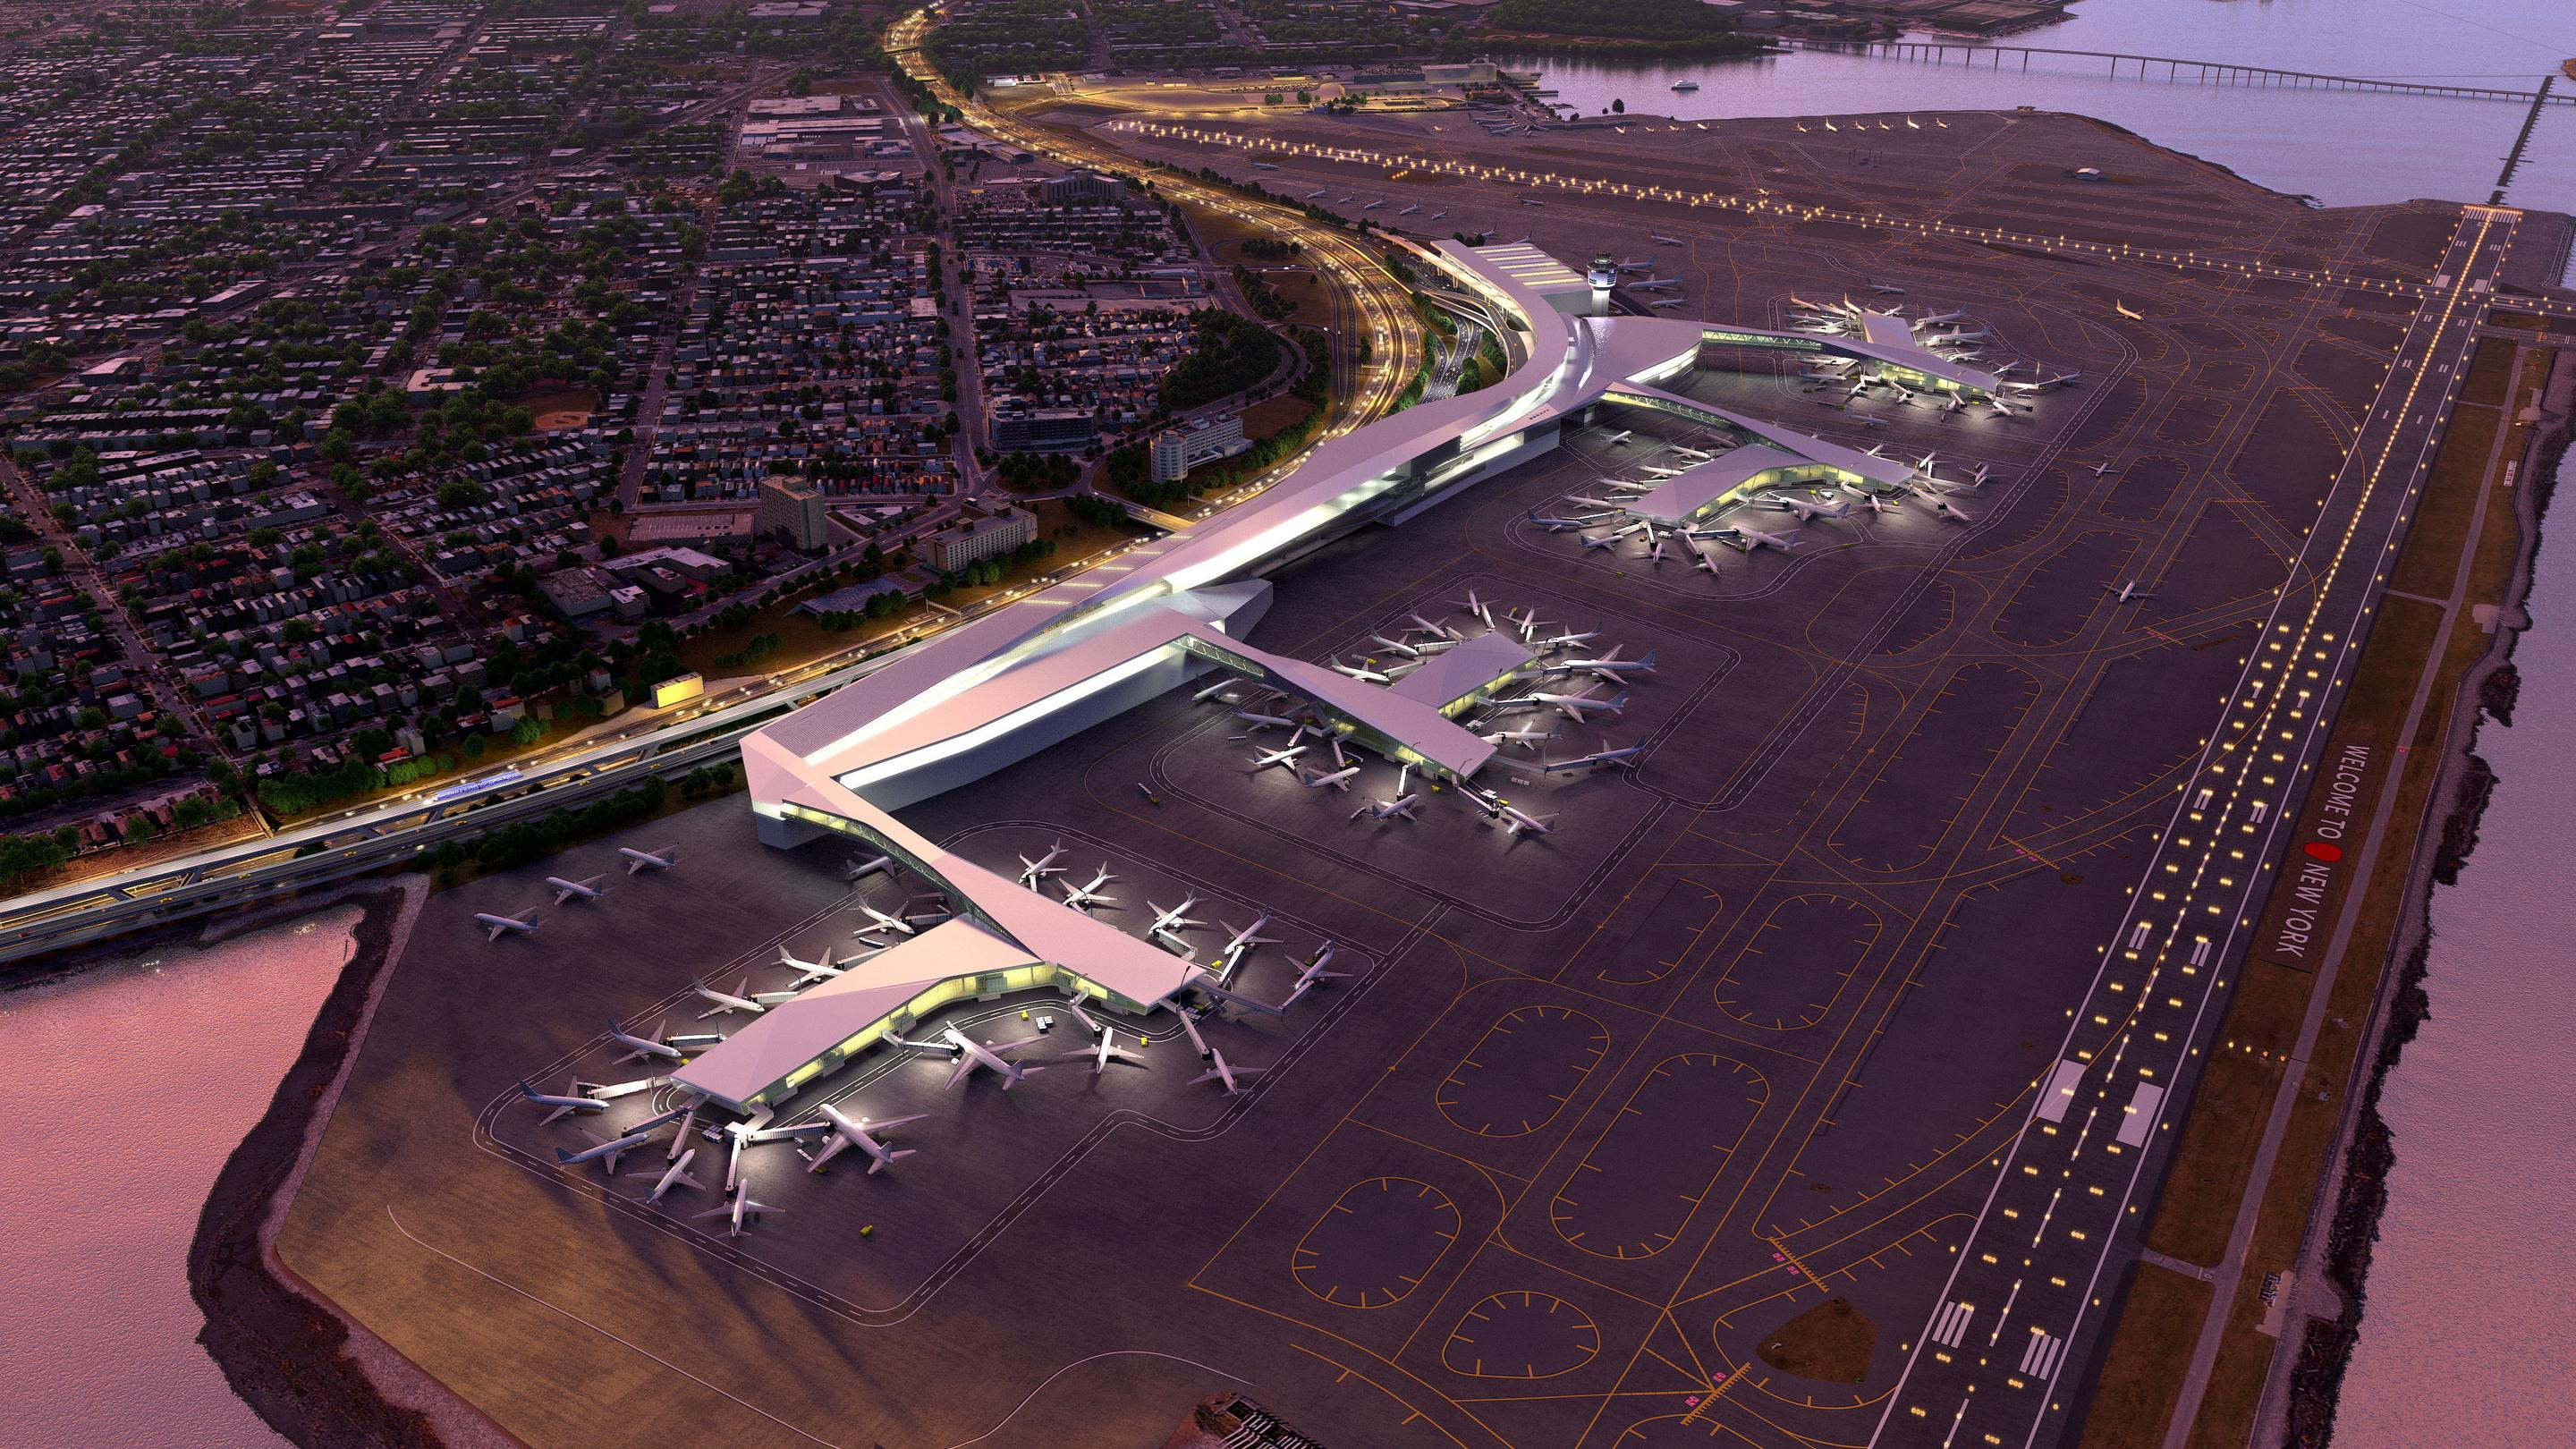 What do you think of the plans to rebuild LaGuardia Airport?